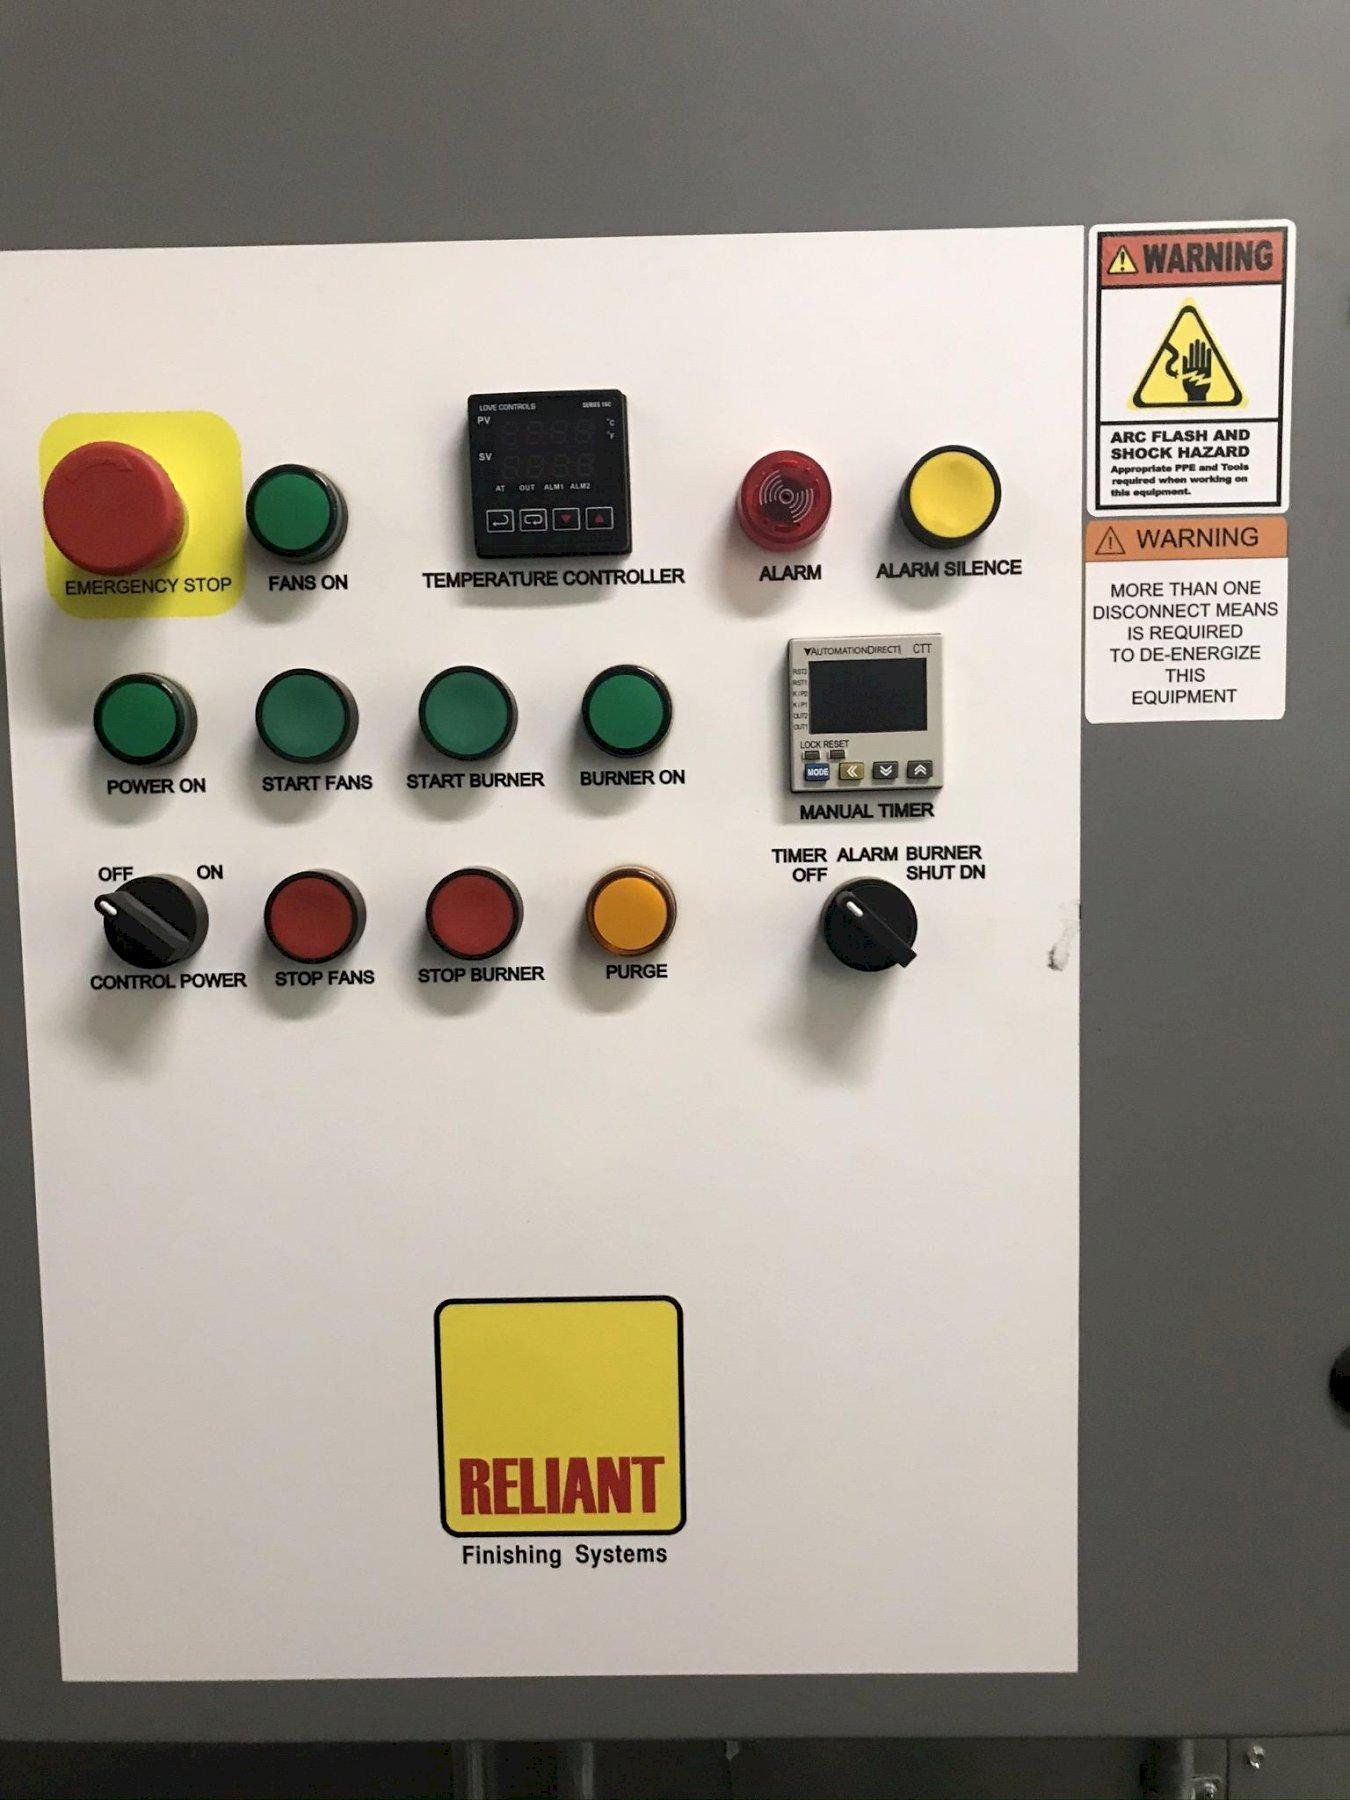 USED RELIANT FINISHING SYSTEMS MANUAL POWDER COATING SYSTEM, Stock # 10776, Year 2019